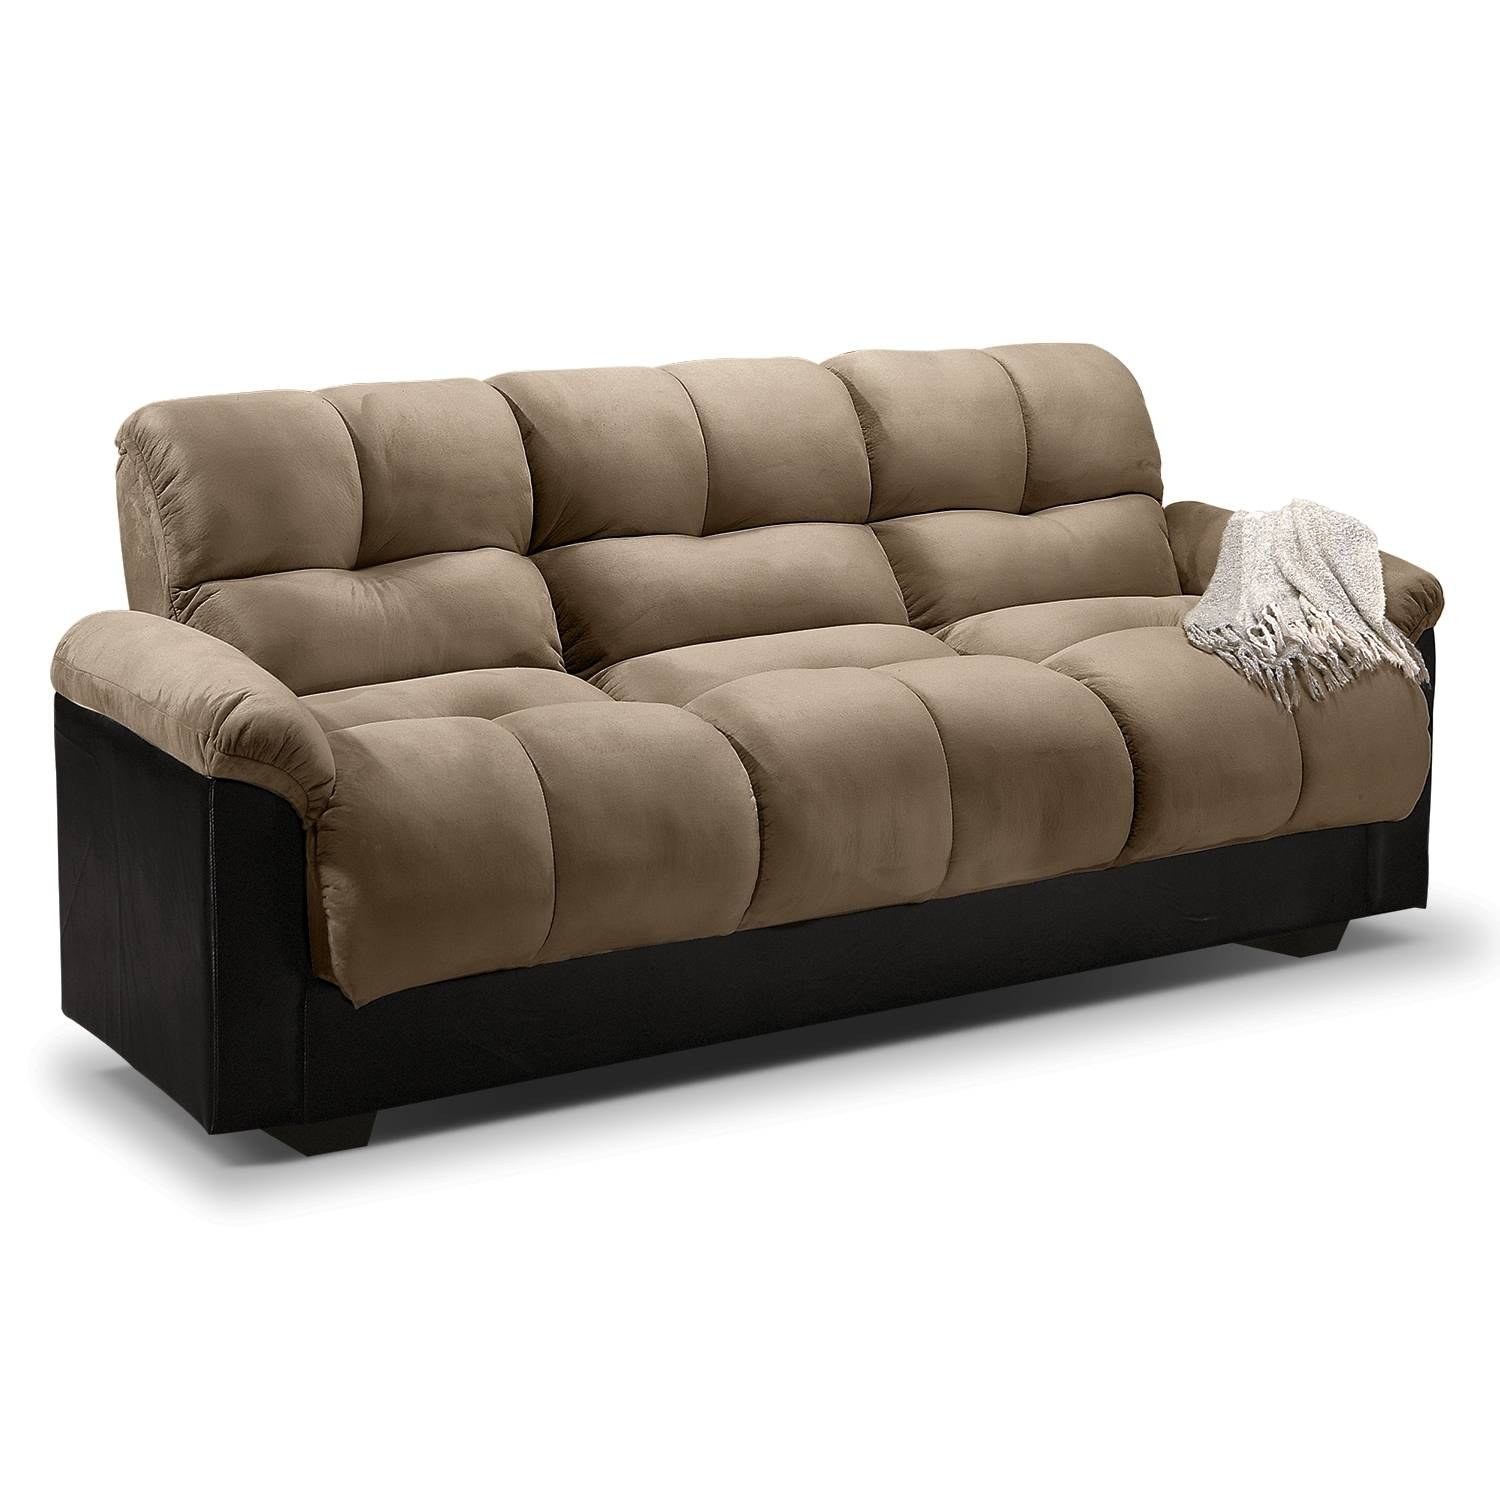 Sofa Bed Futons With Regard To City Sofa Beds (View 23 of 30)